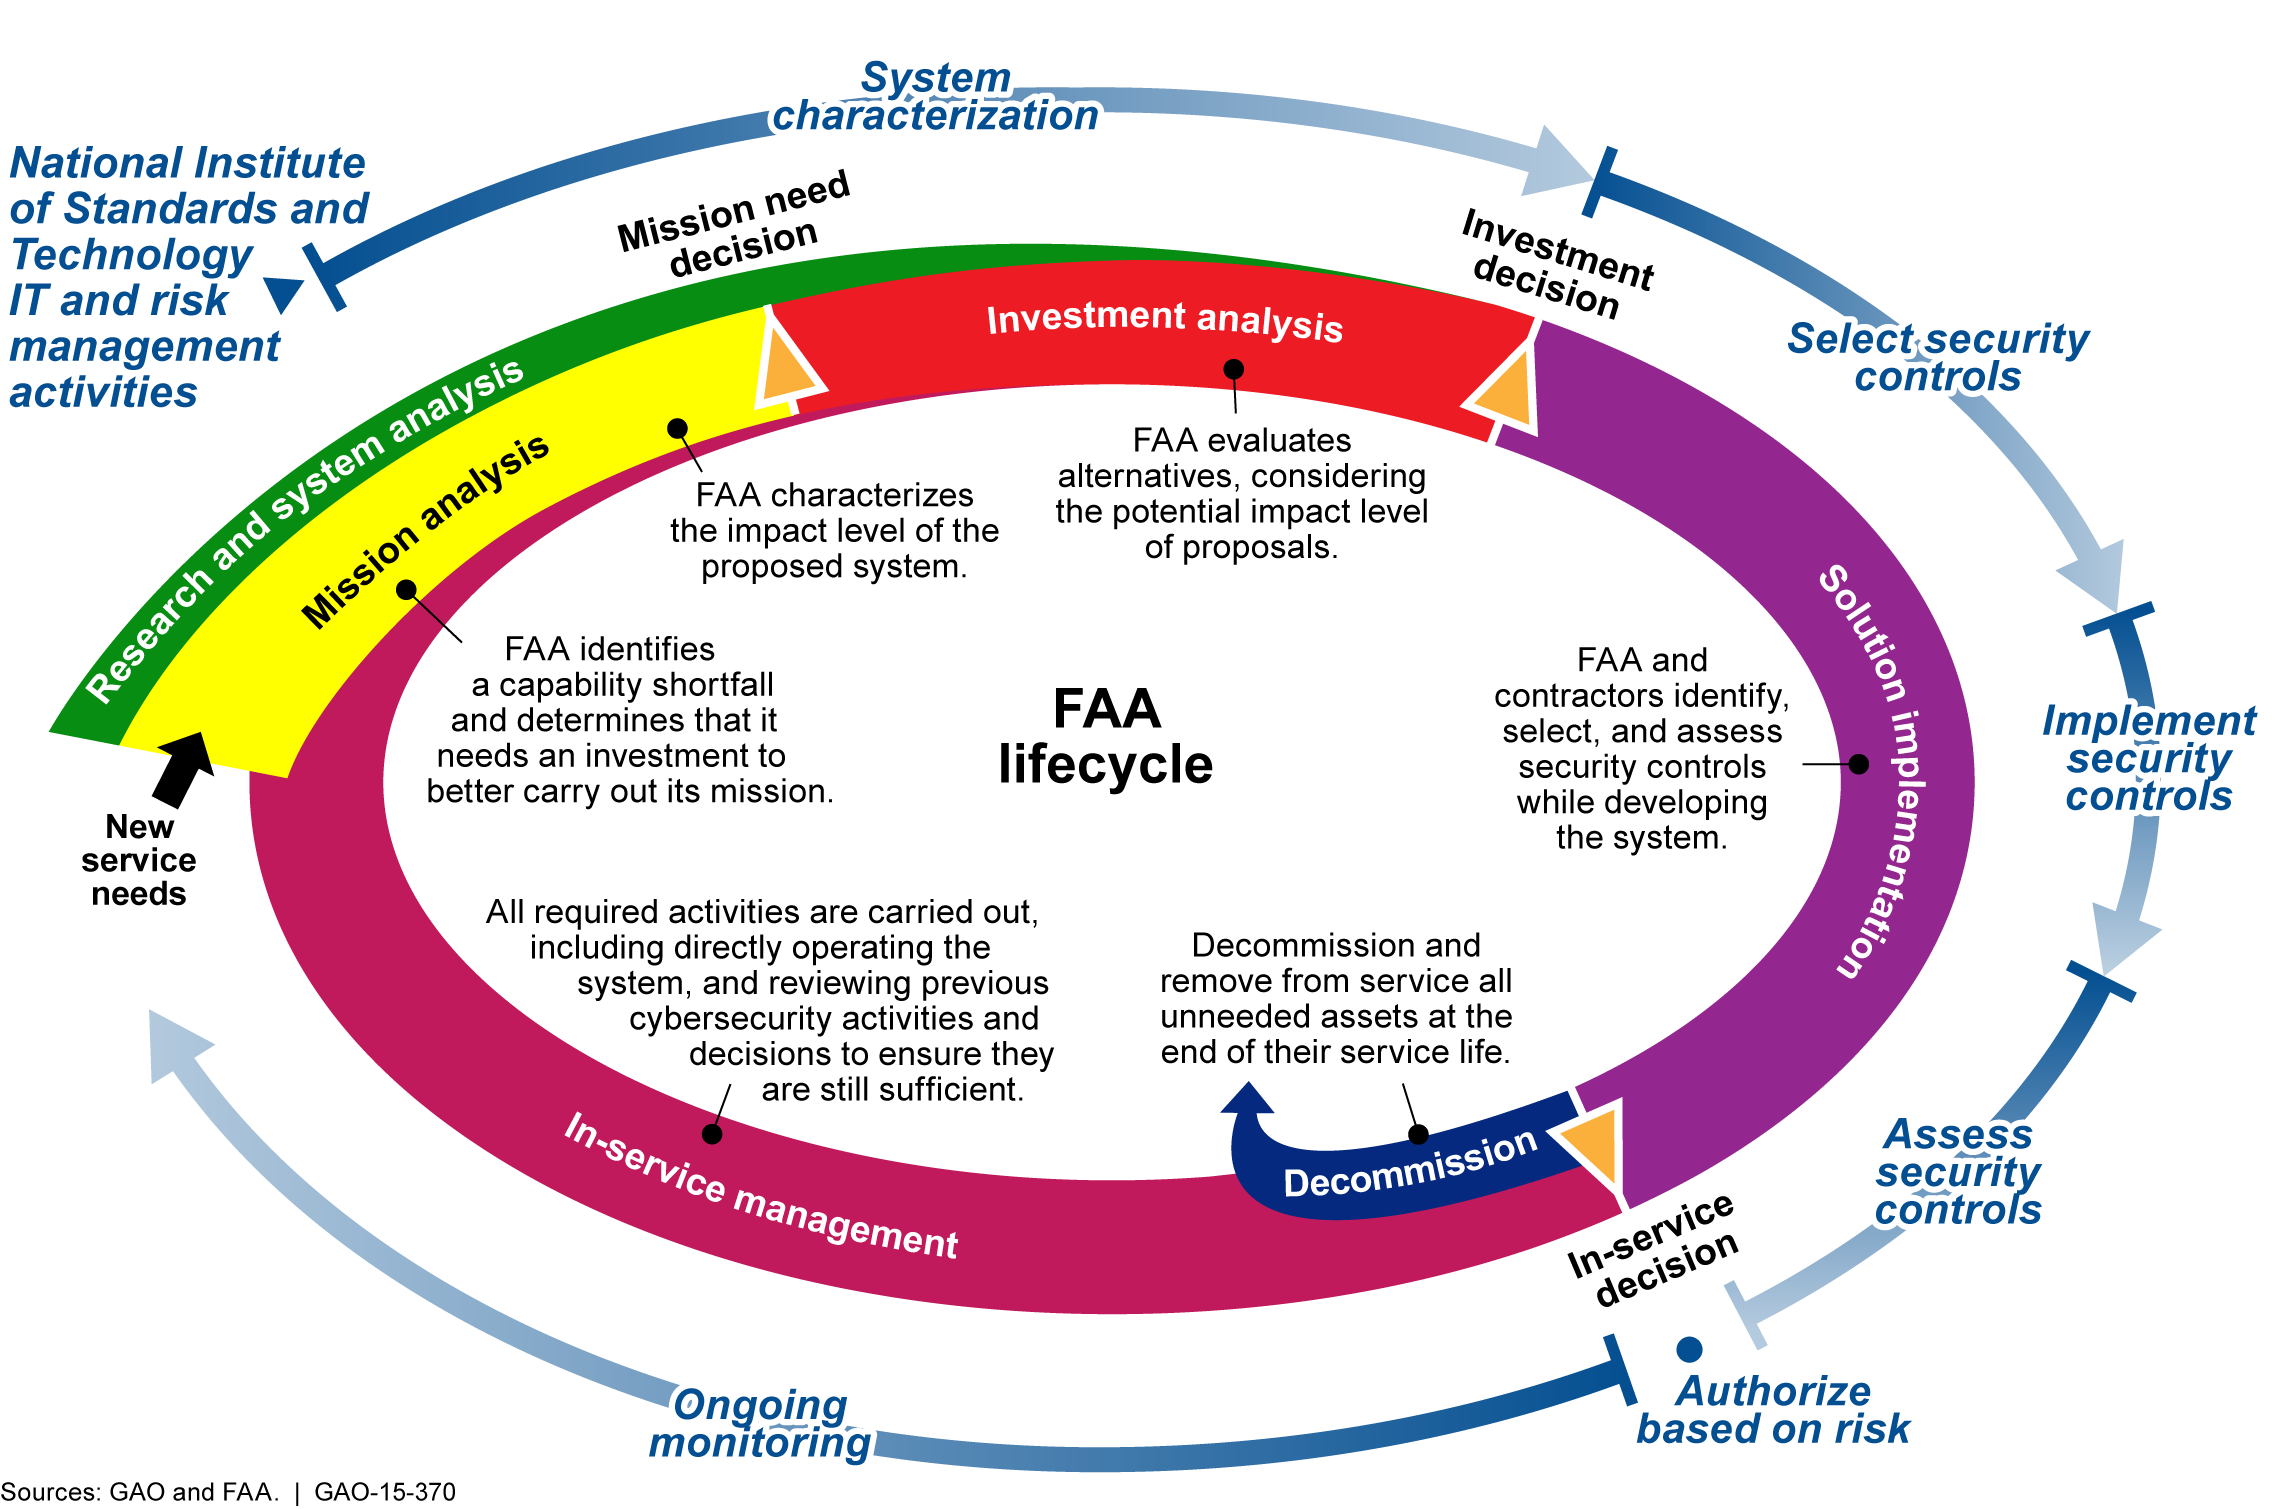 Figure 5: Phases of the FAA s Acquisition Life Cycle and National Institute of Standards and Technology s Information- Technology and Risk-Management Activities System categorization: NIST guidance